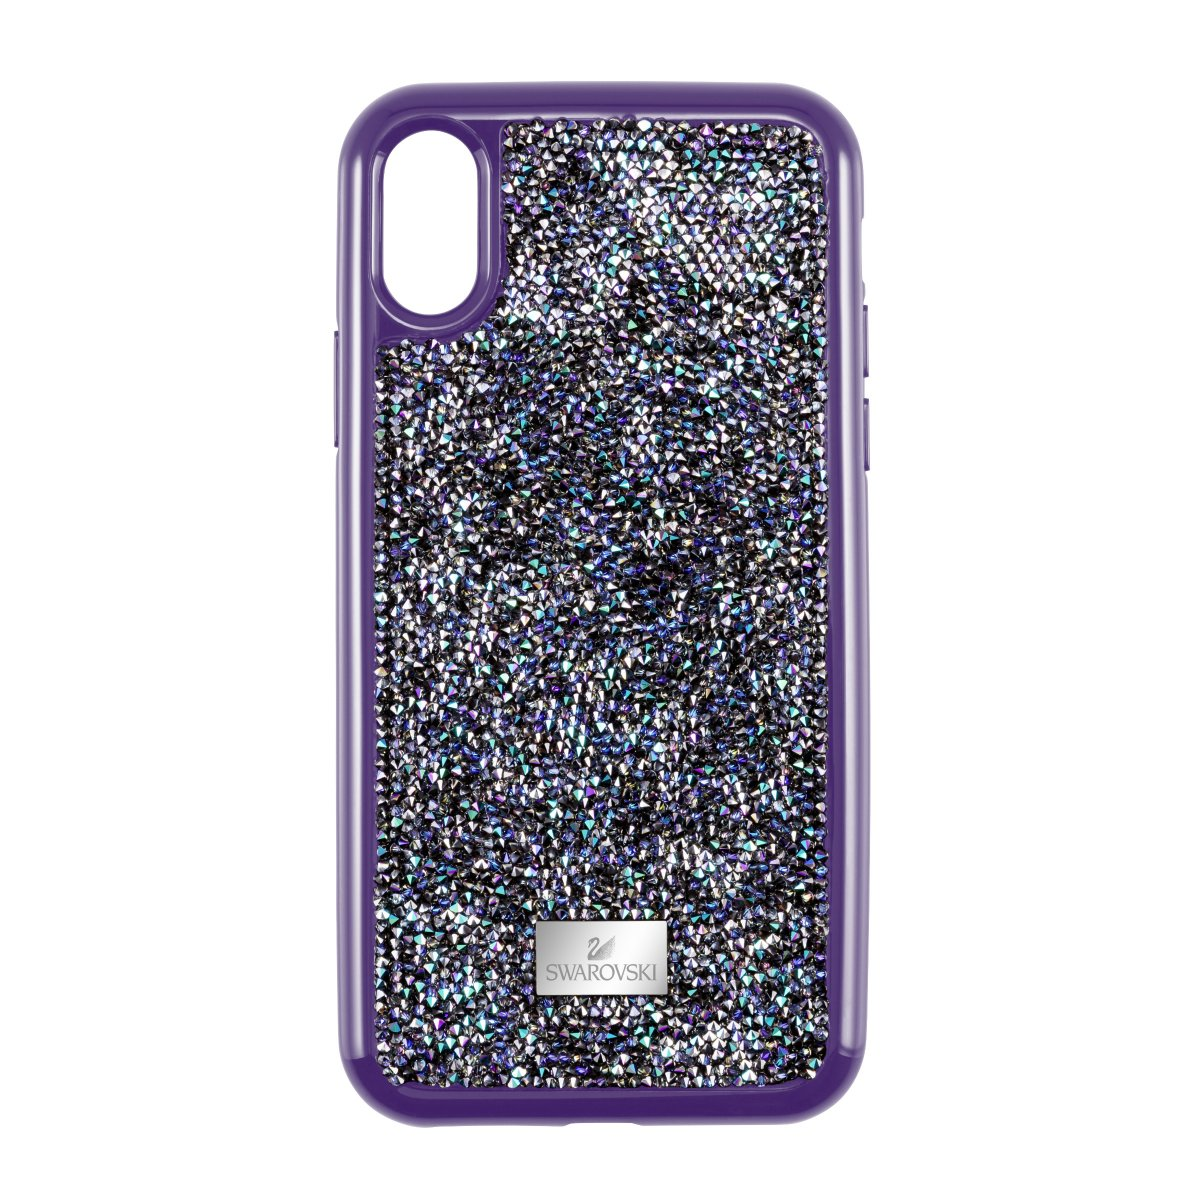 1e4974b6a56 SWAROVSKI kryt na iPhone GLAM ROCK. IPXS MAX:CASE PURPLE 5478875 ...